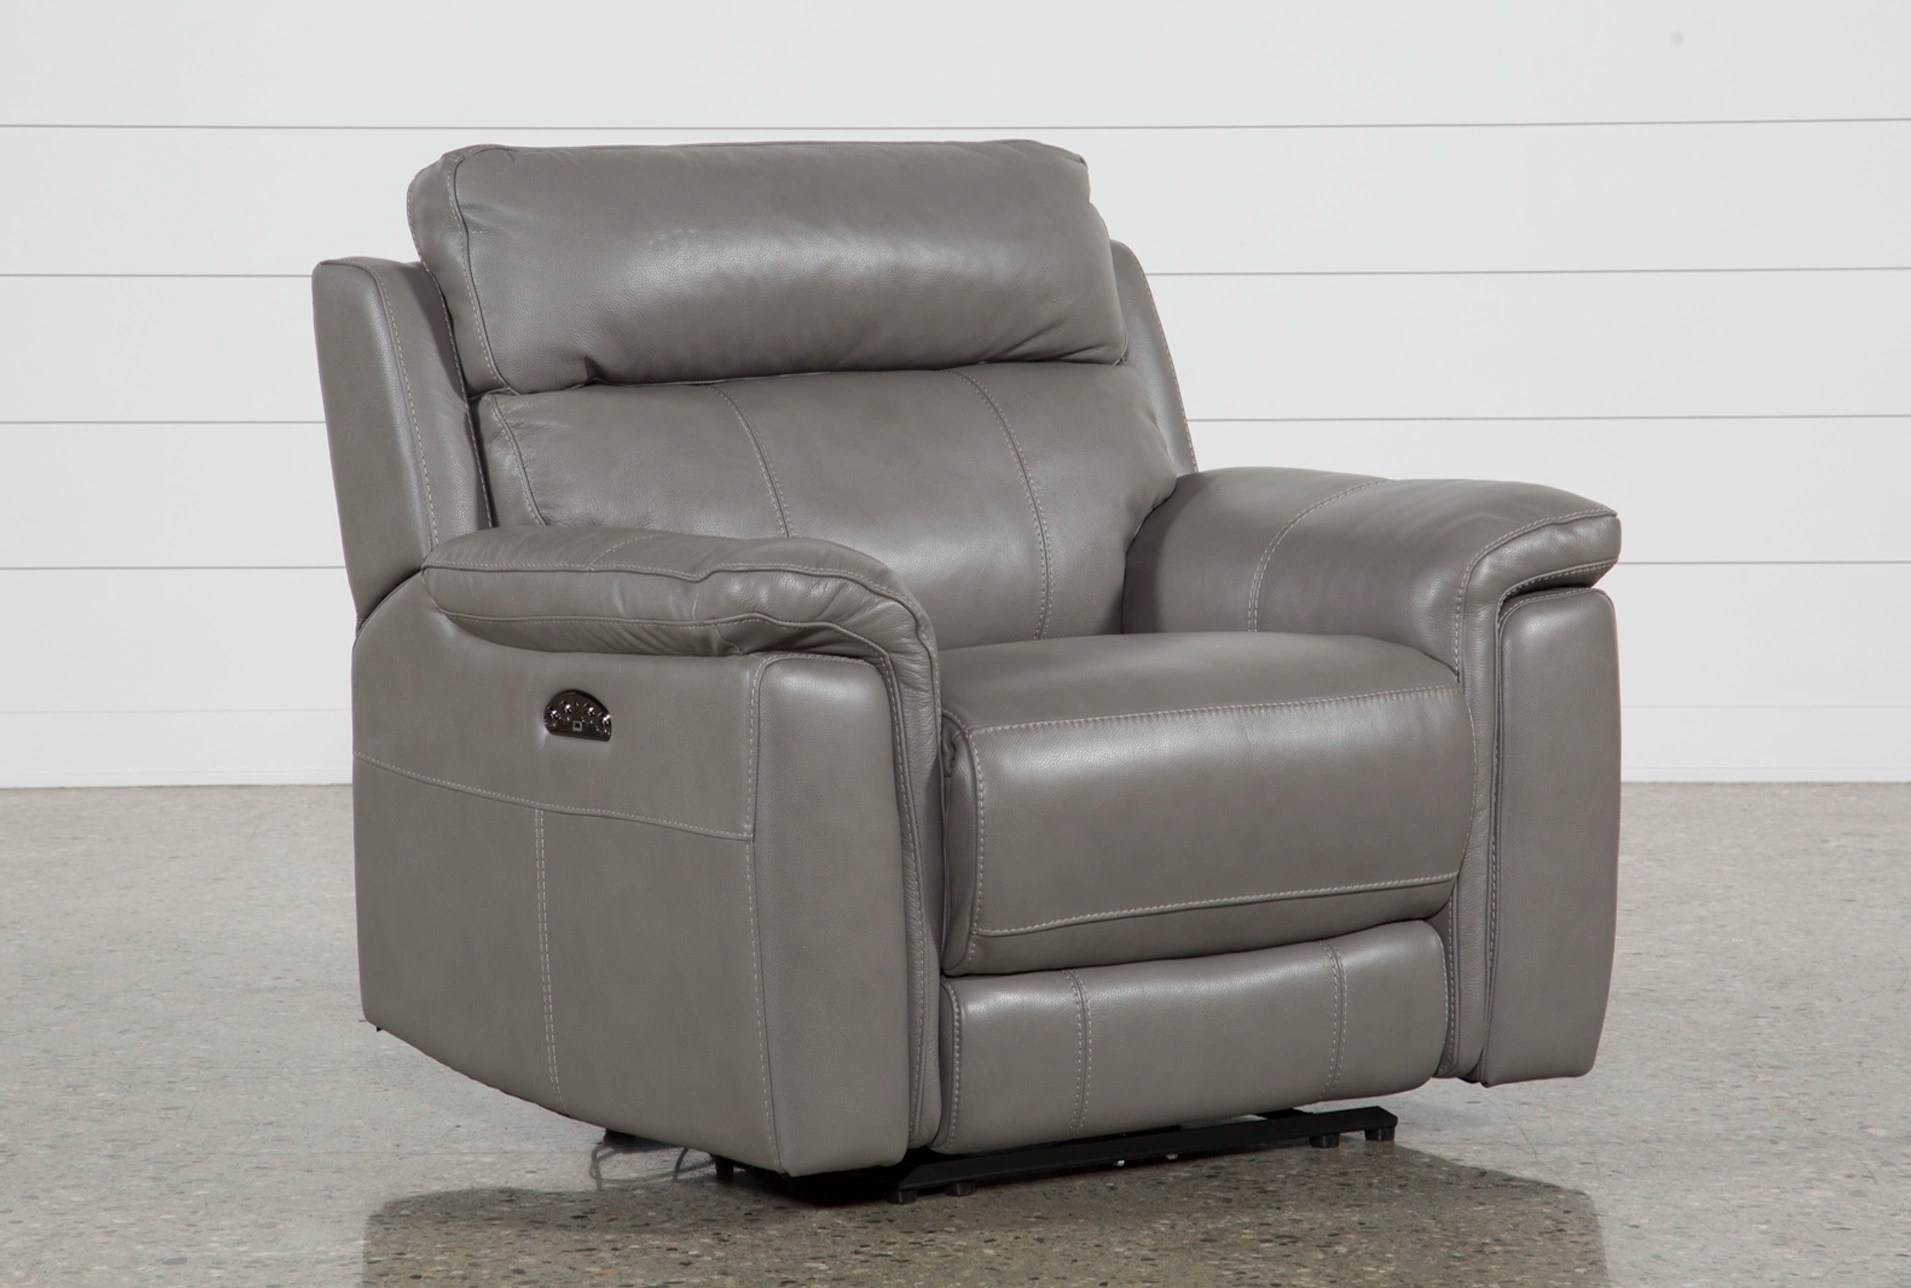 Electric Recliner Leather Chairs Dino Grey Leather Power Recliner W Power Headrest Usb